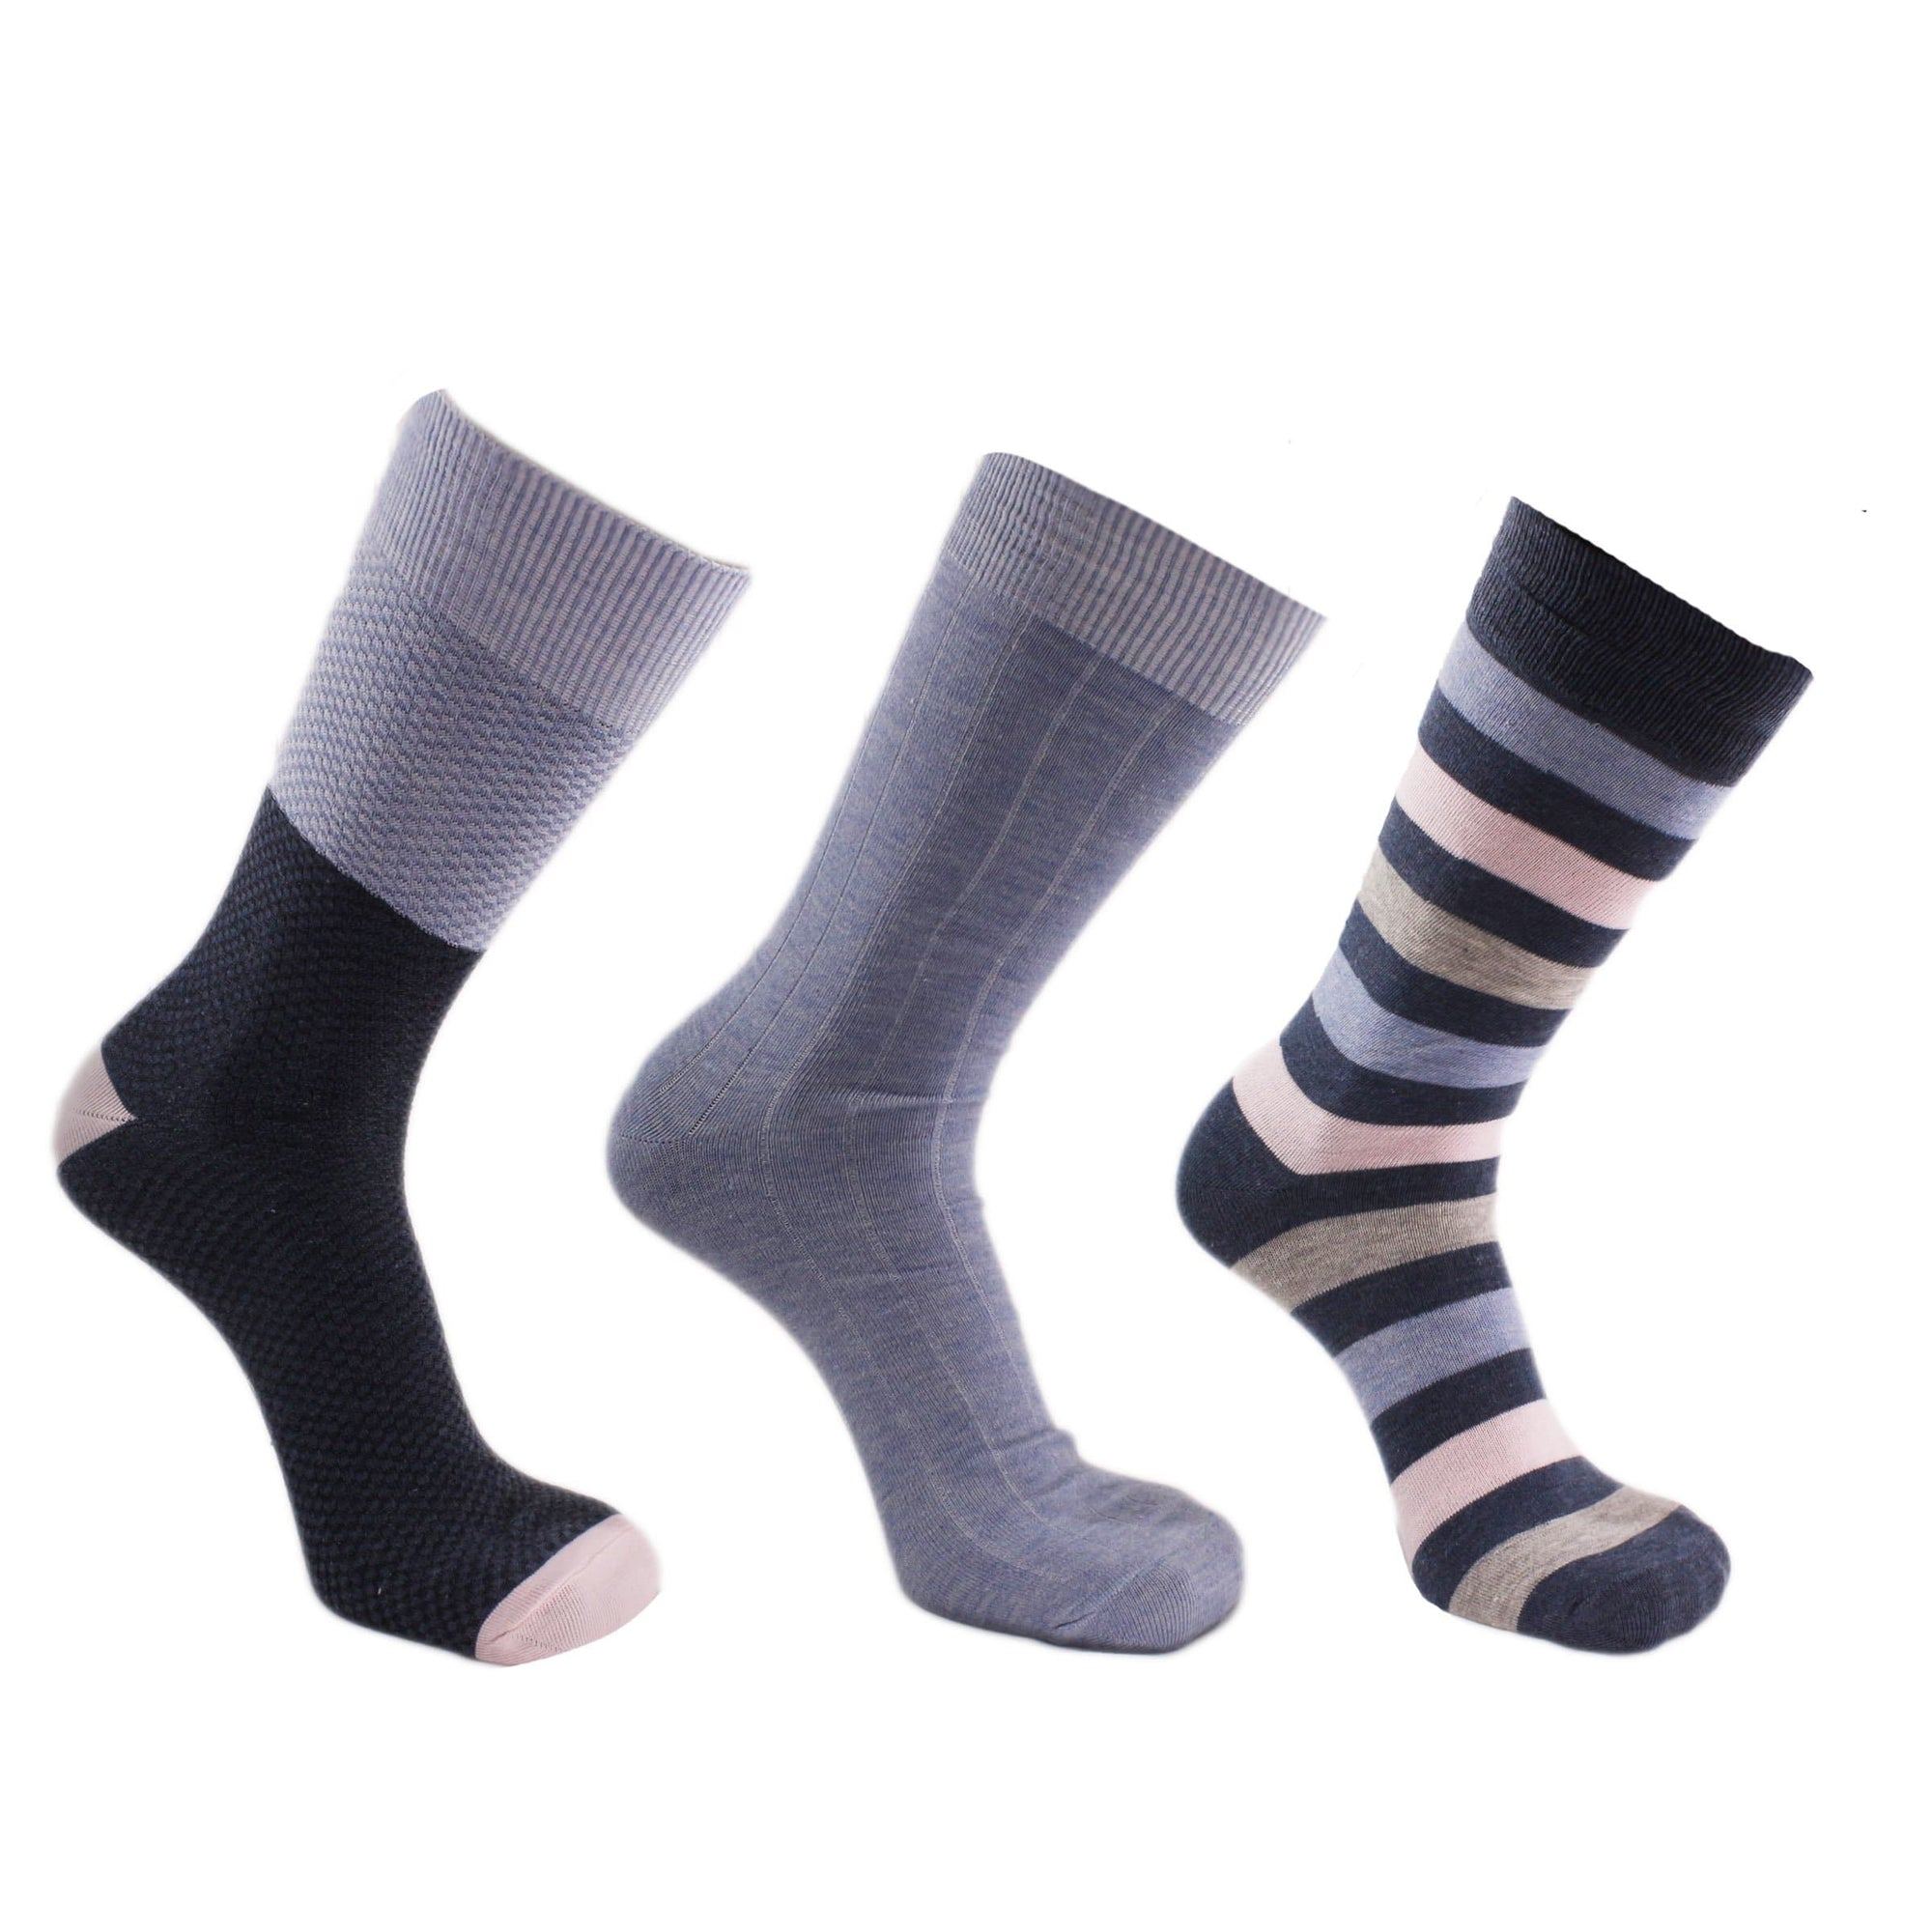 Waffle Texture Crew Socks 3 Pack